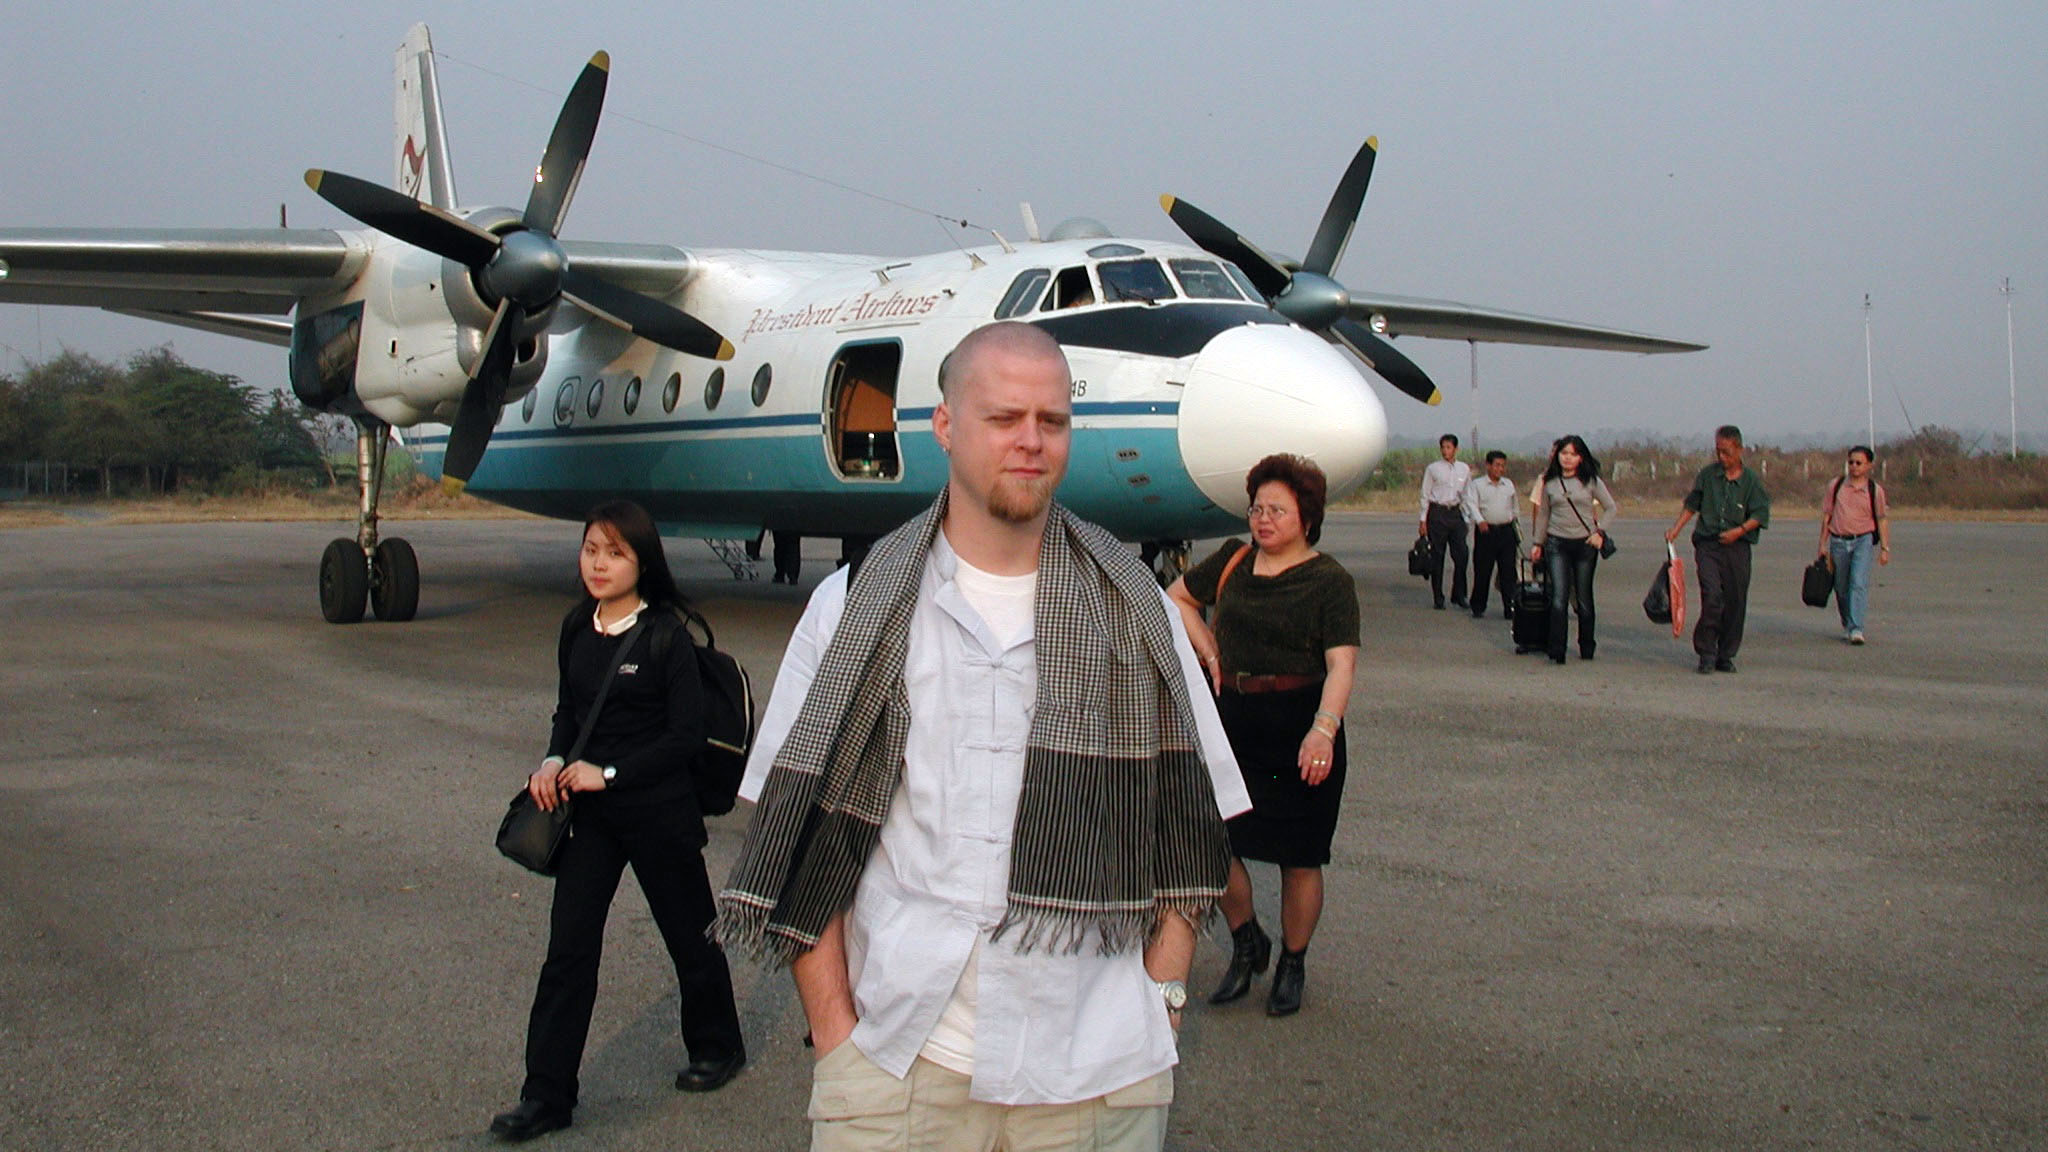 Me, disembarking at the Battambang, Cambodia airport, circa 2002